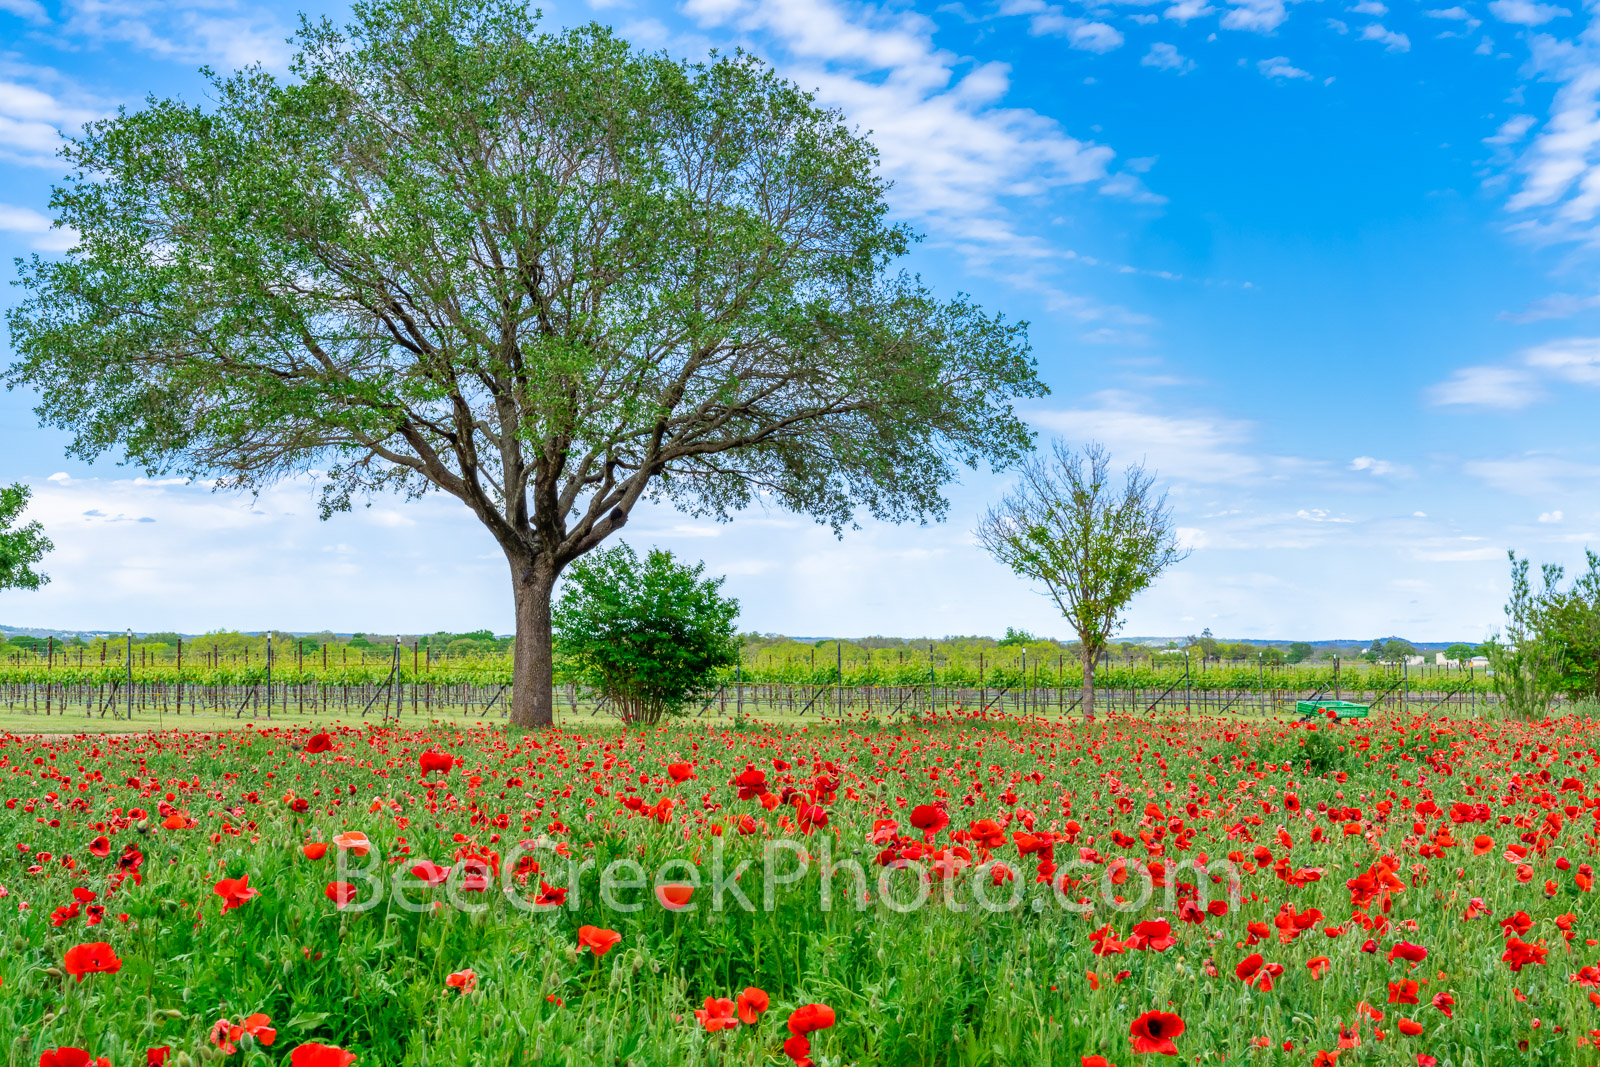 red poppies, poppy, red corn poppies, red poppy, wildflowers, texas wildflowers, tree, blue sky, red, green, spring, springtime, plants, flower, flowers, field of wildflowers, field of poppies, vineyard, vineyards, texas wildflowers, texas hill country, wildseed farm, fredrickburg, wildflower landscapes,